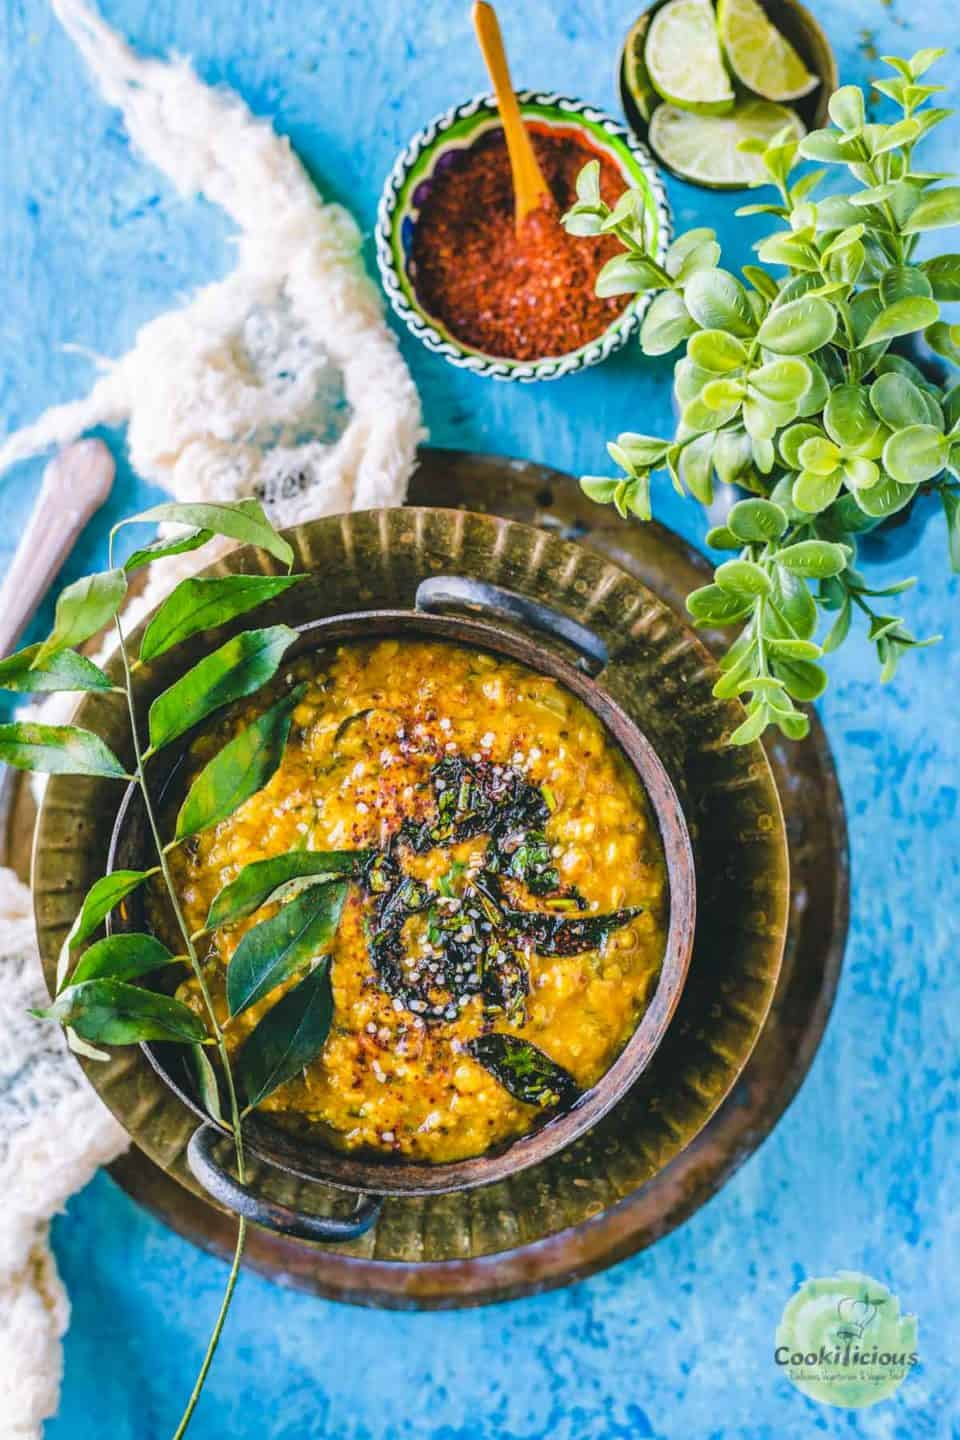 Methi Dal served in a kadai and placed on a plate